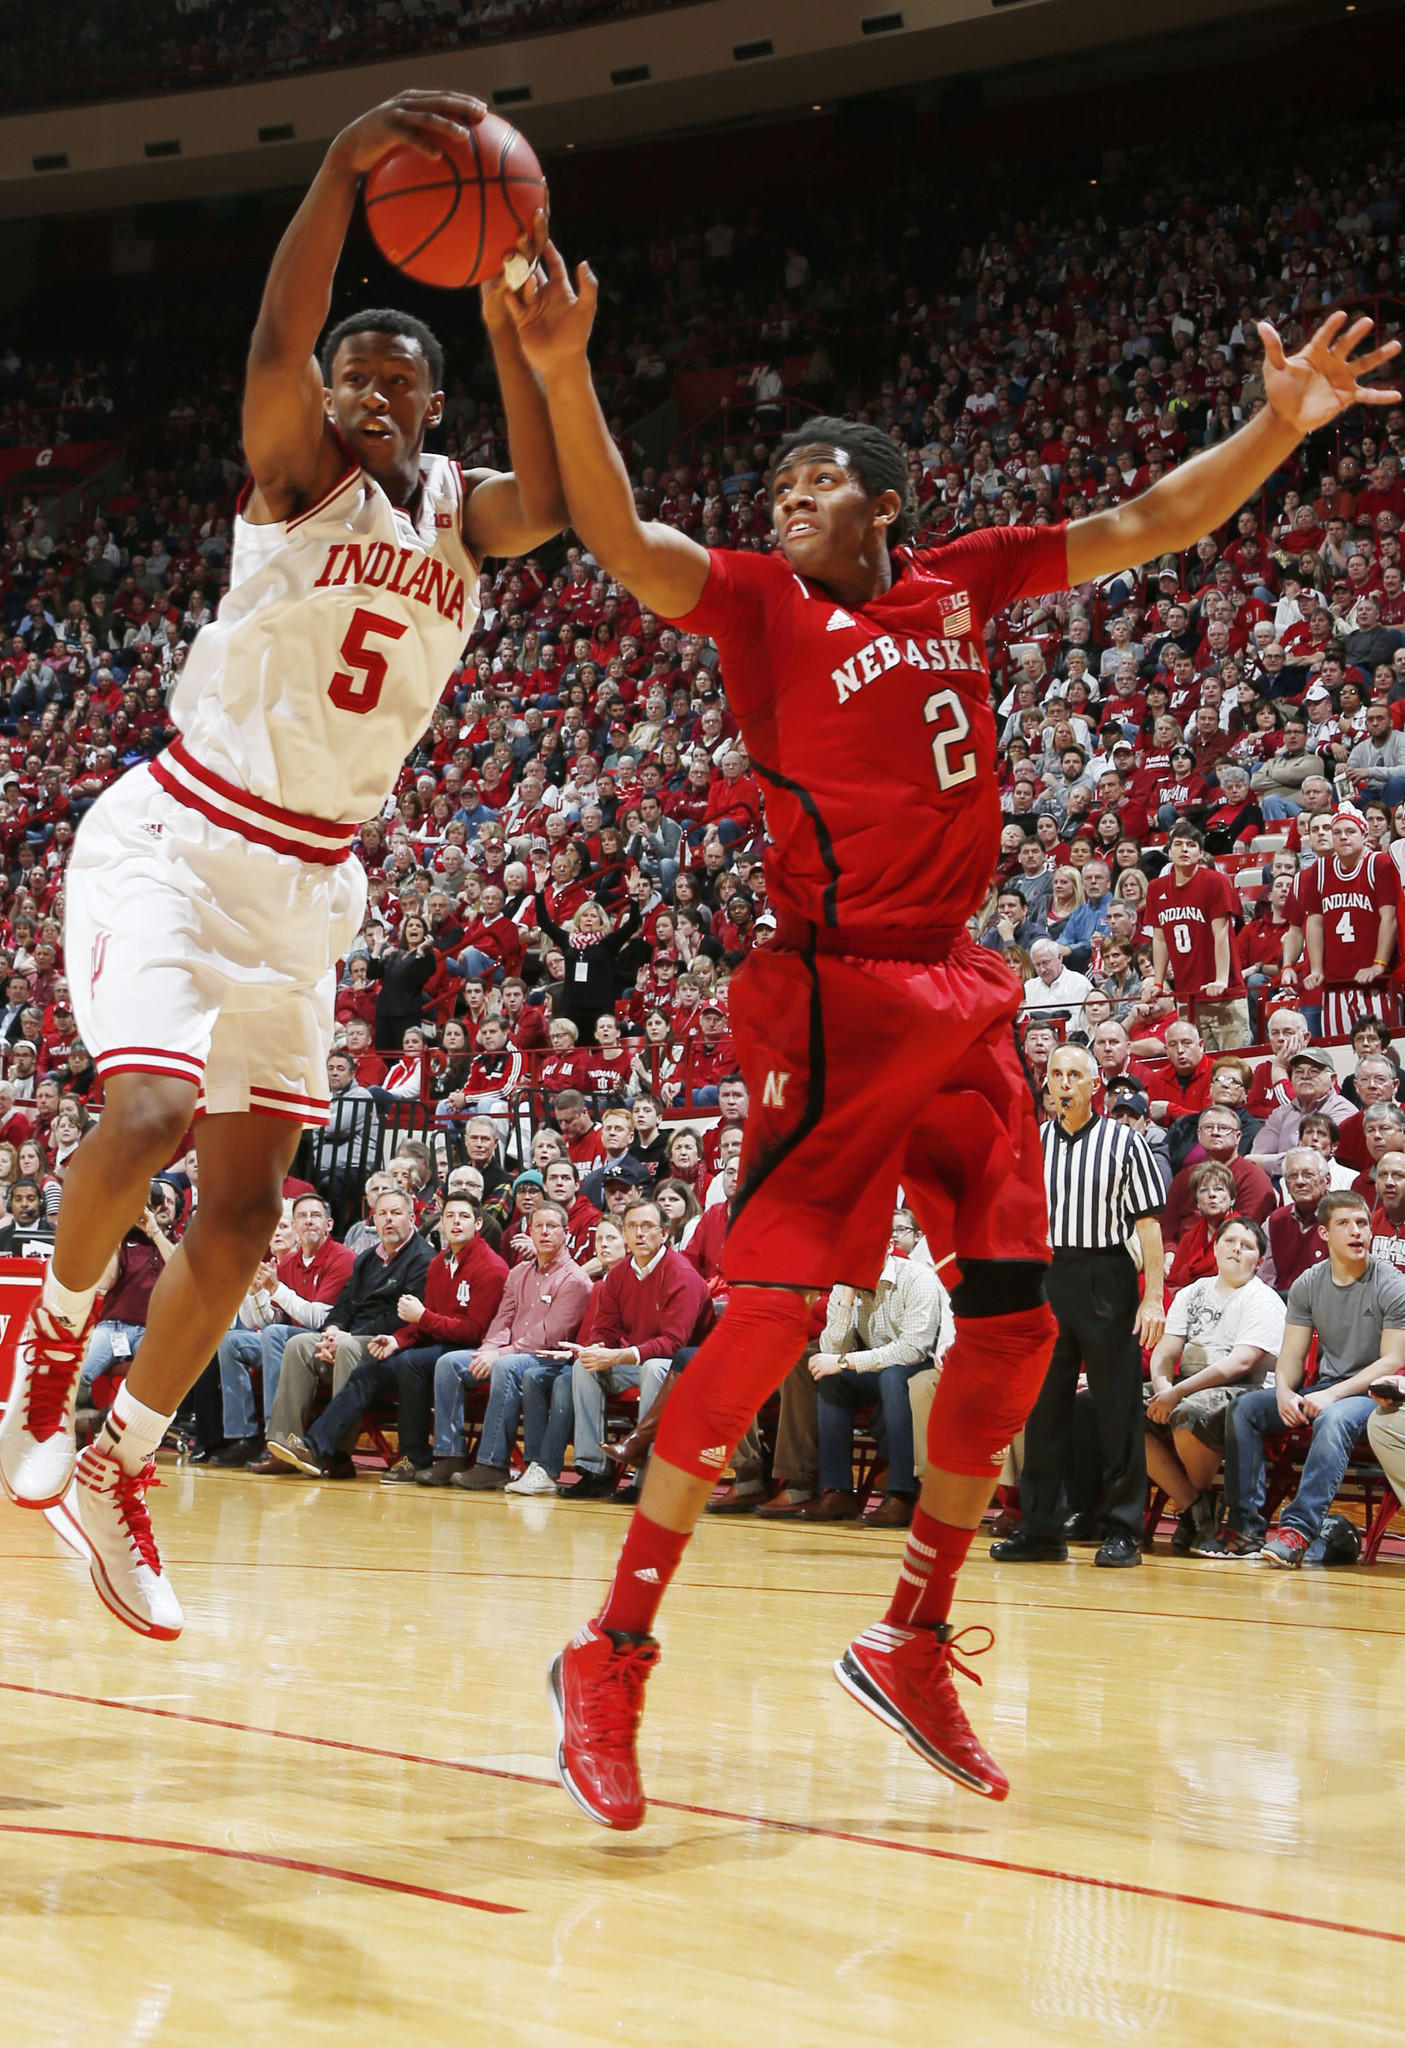 Indiana's Troy Williams grabs a rebound against Nebraska's David Rivers at Assembly Hall.